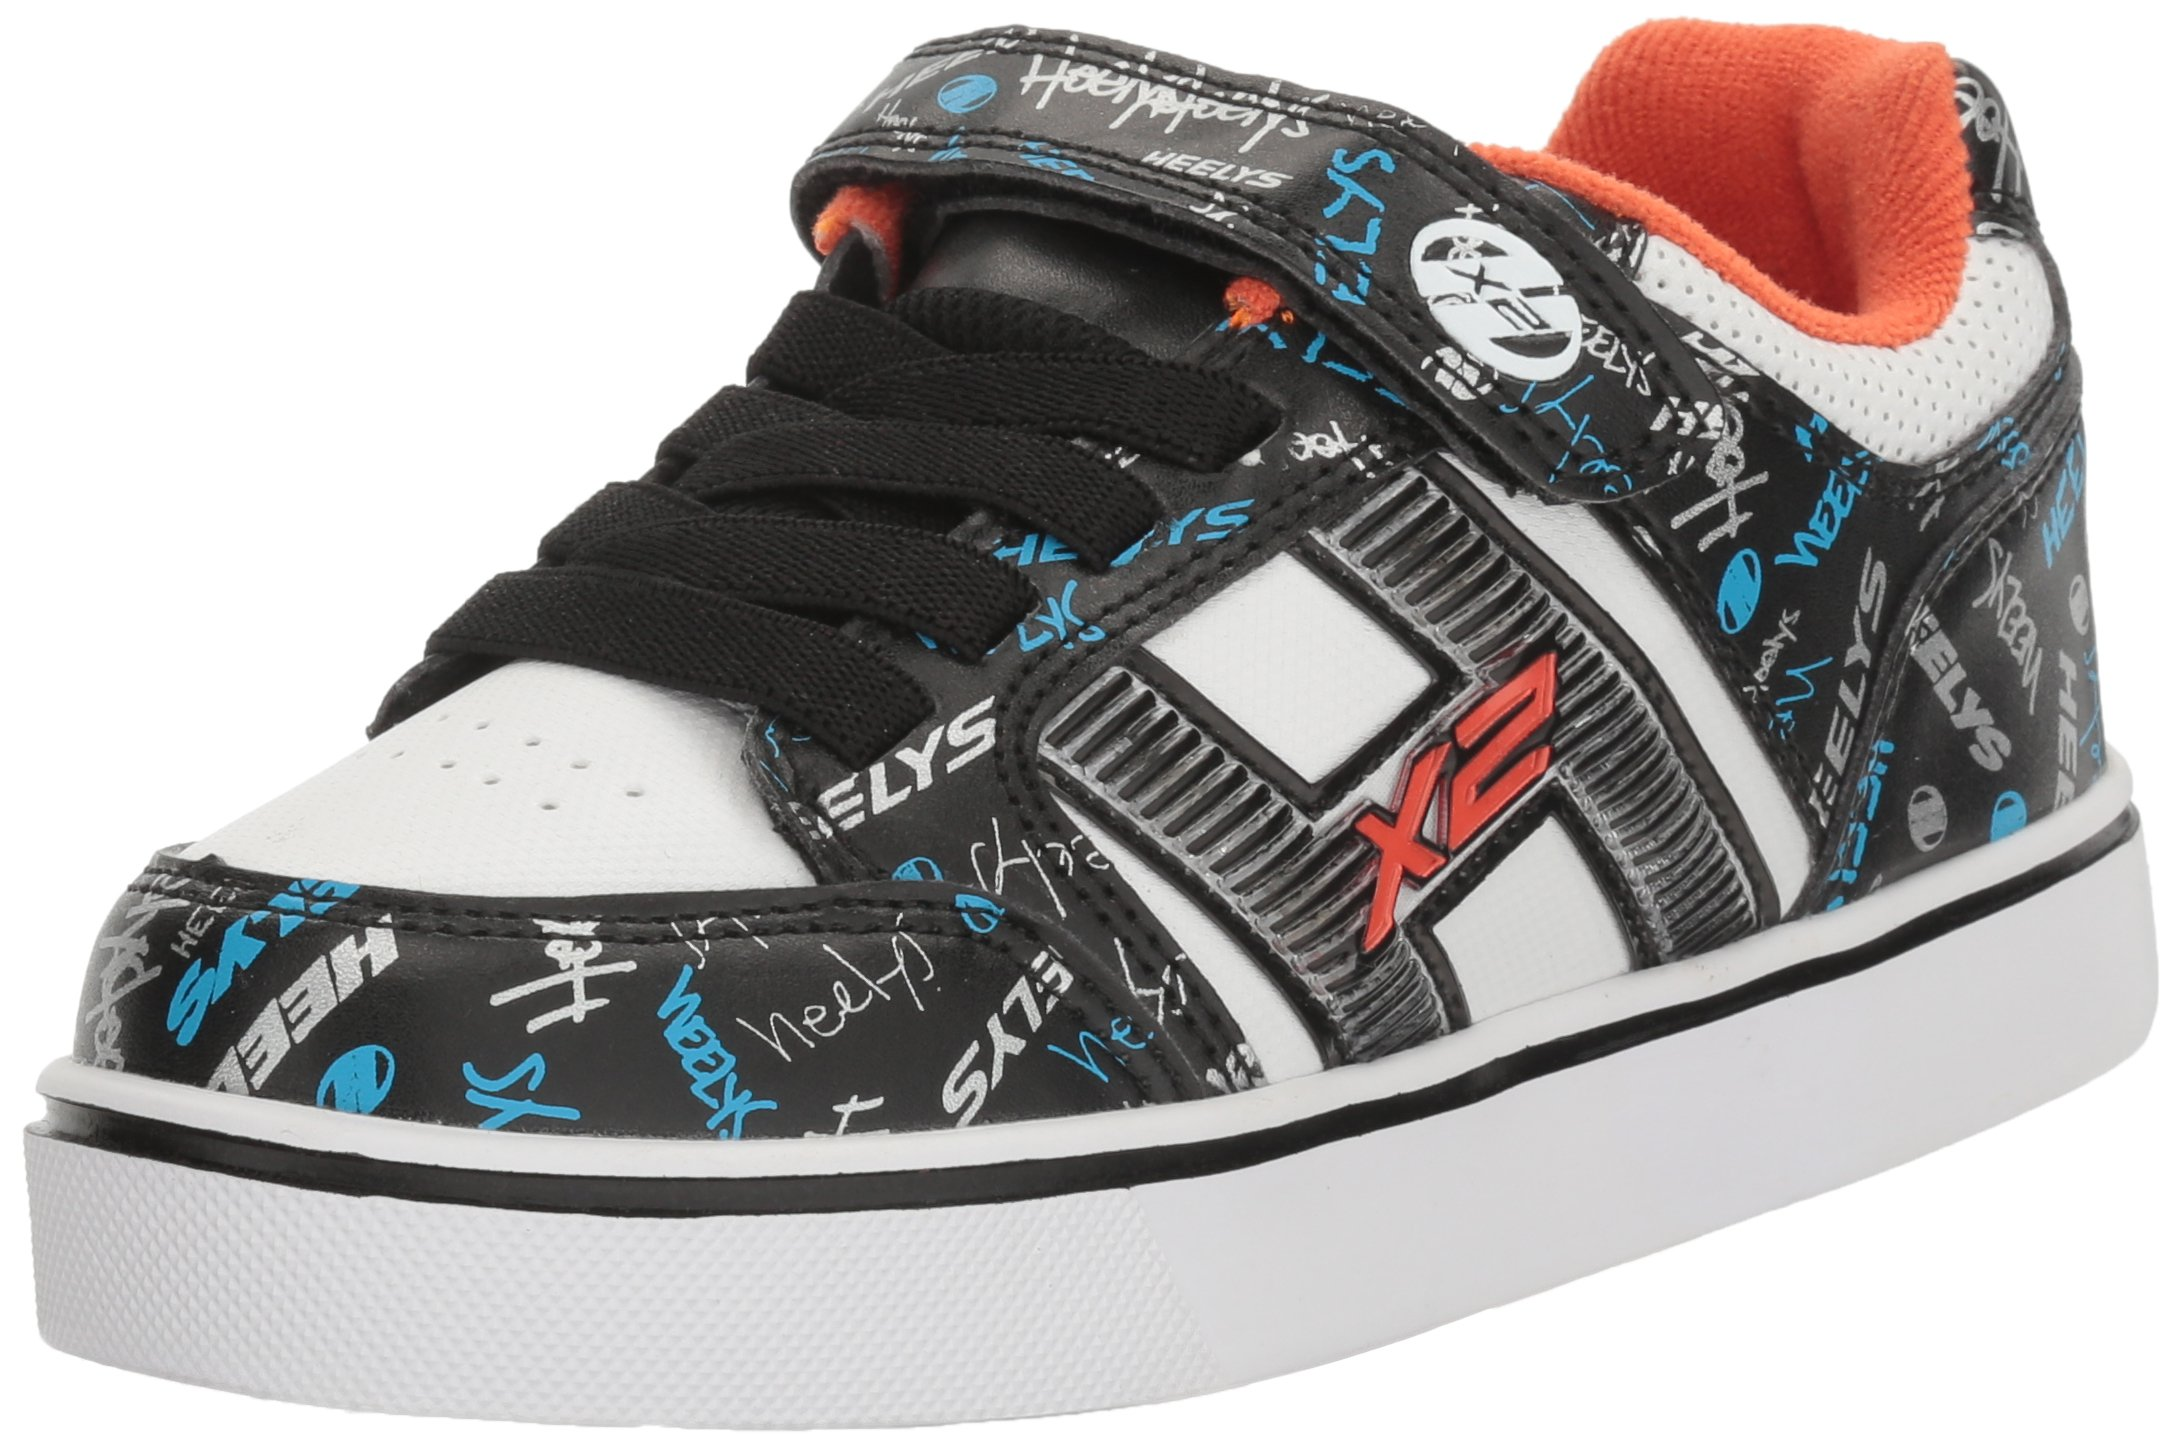 Heelys Boys' Bolt Plus x2 Sneaker, Black/White/Orange, 12 M US Little Kid